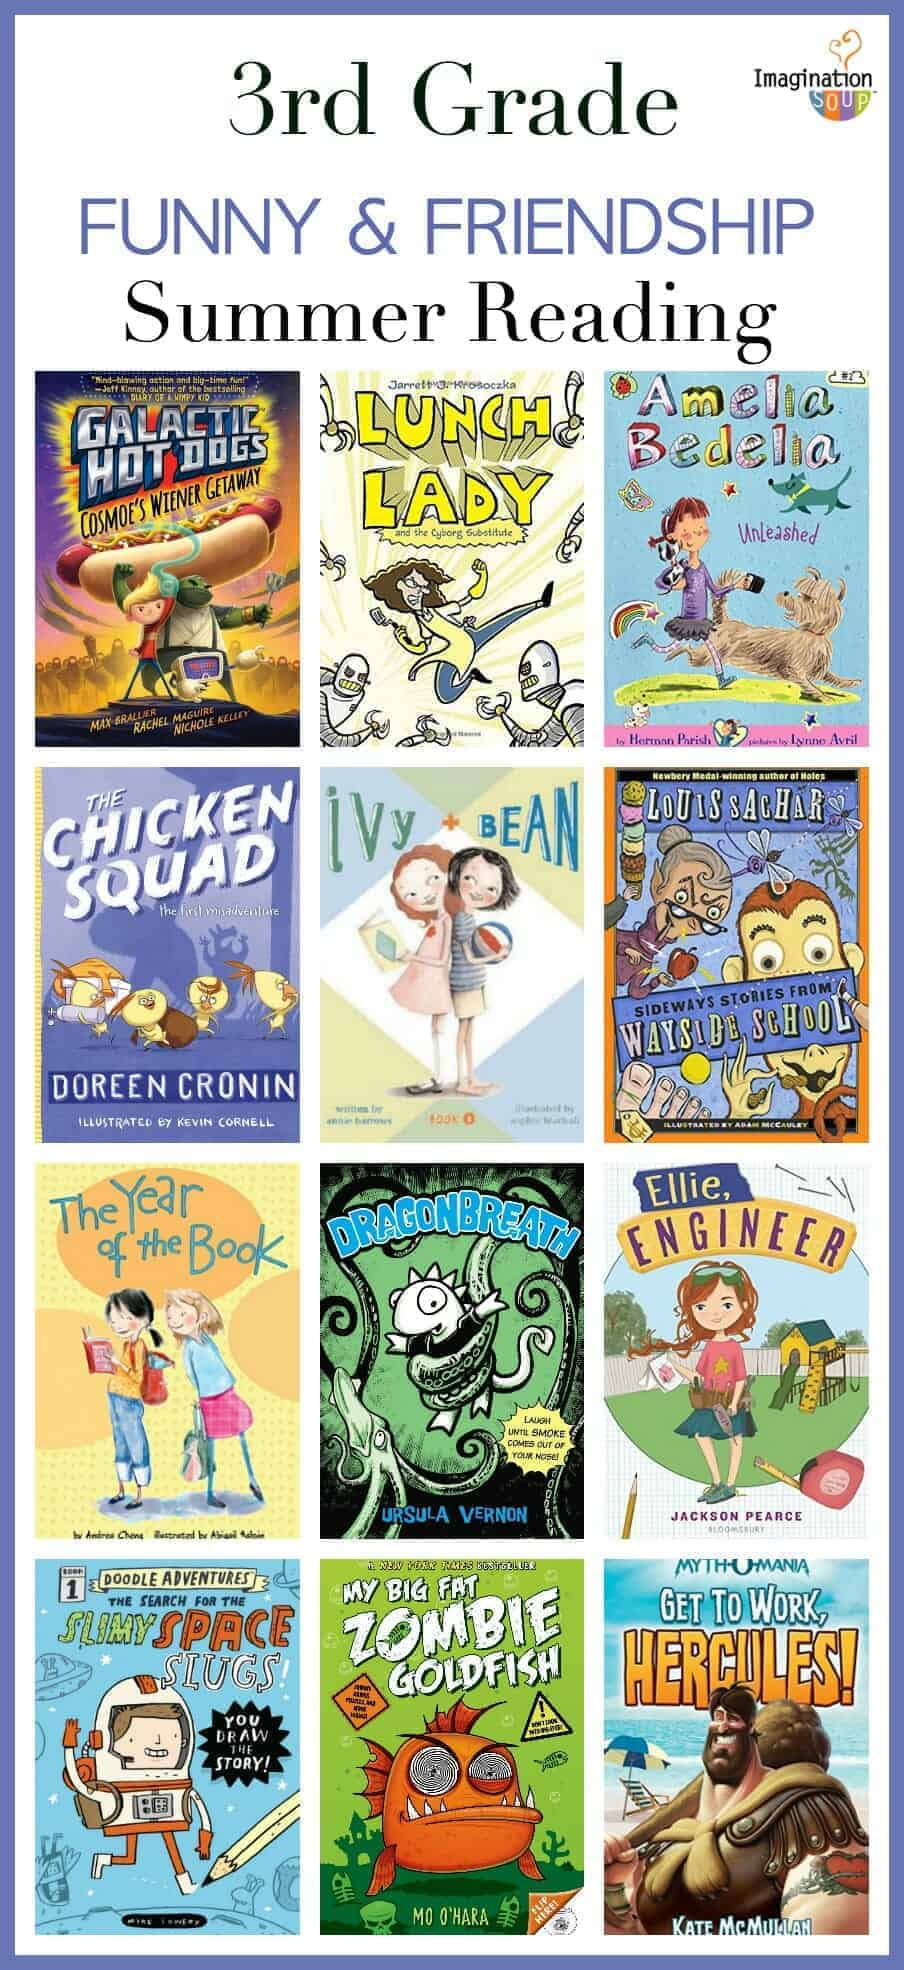 3rd grade summer reading list - funny and friendship books